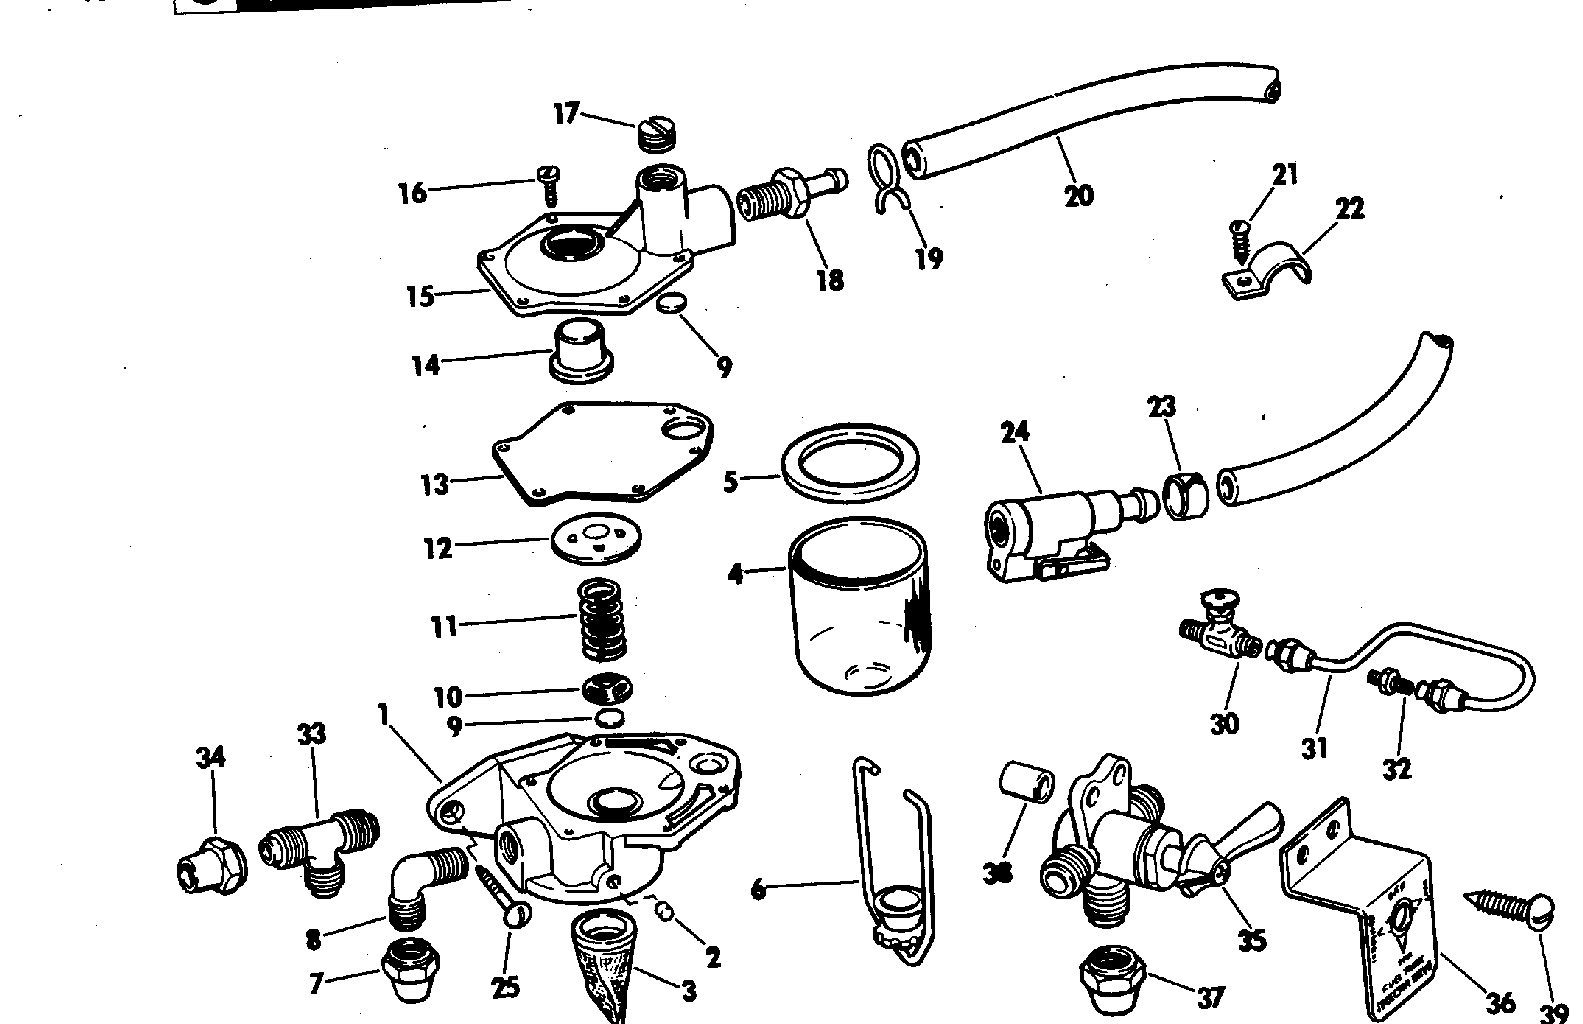 Primer Pump Kit Fuel System 1972 Accessories for 1972